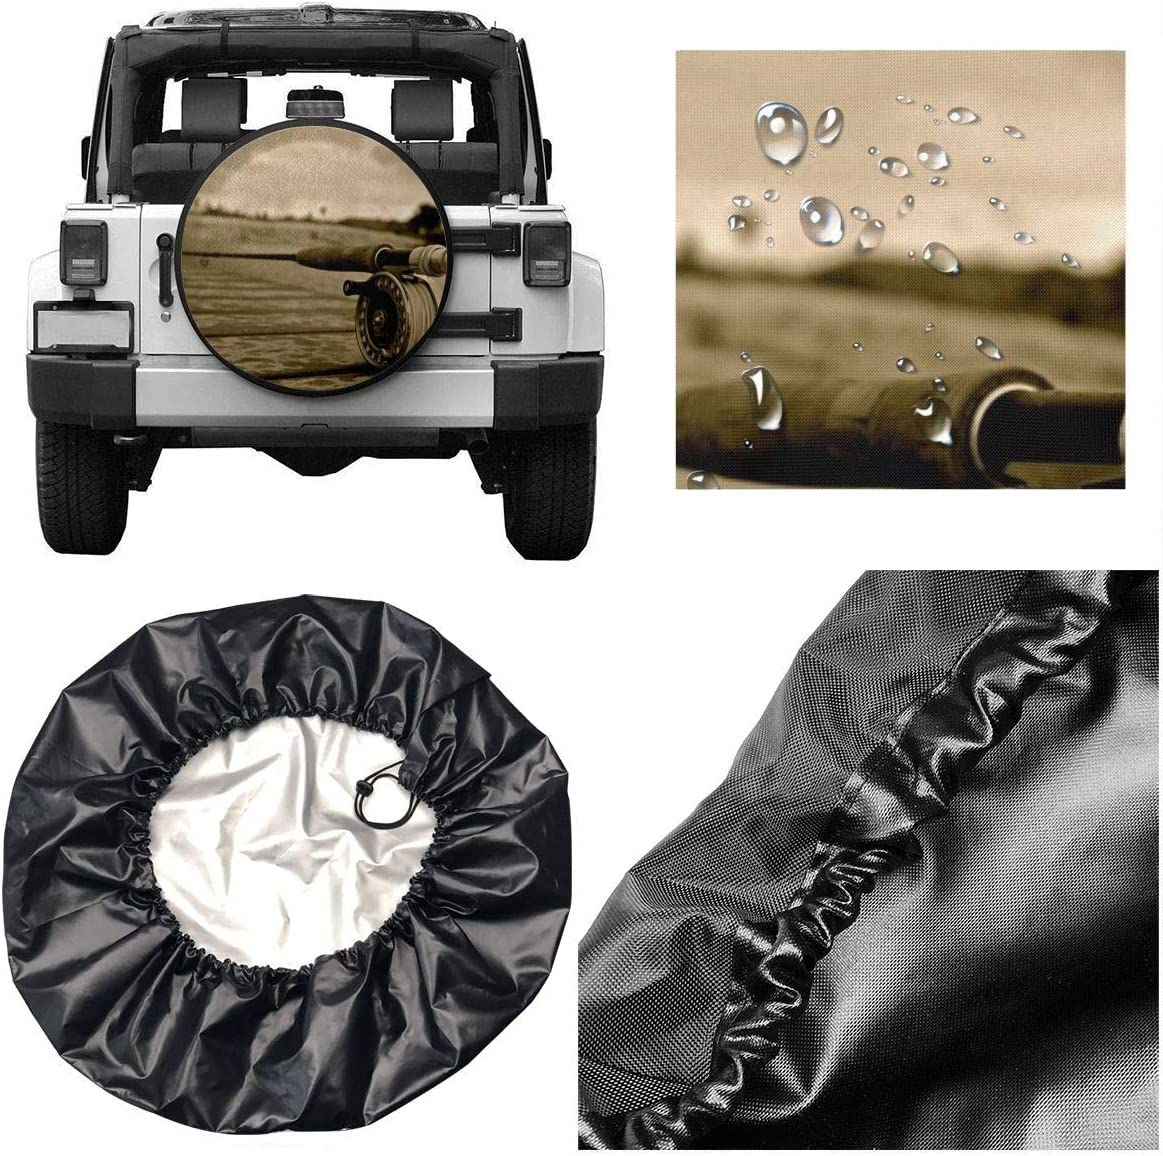 RV Je45if-Q Spare Tire Cover Artistic Fly Fishing Durable Universal Wheel Tire Cover for Trailers Trucks and Many Vehicle, SUV